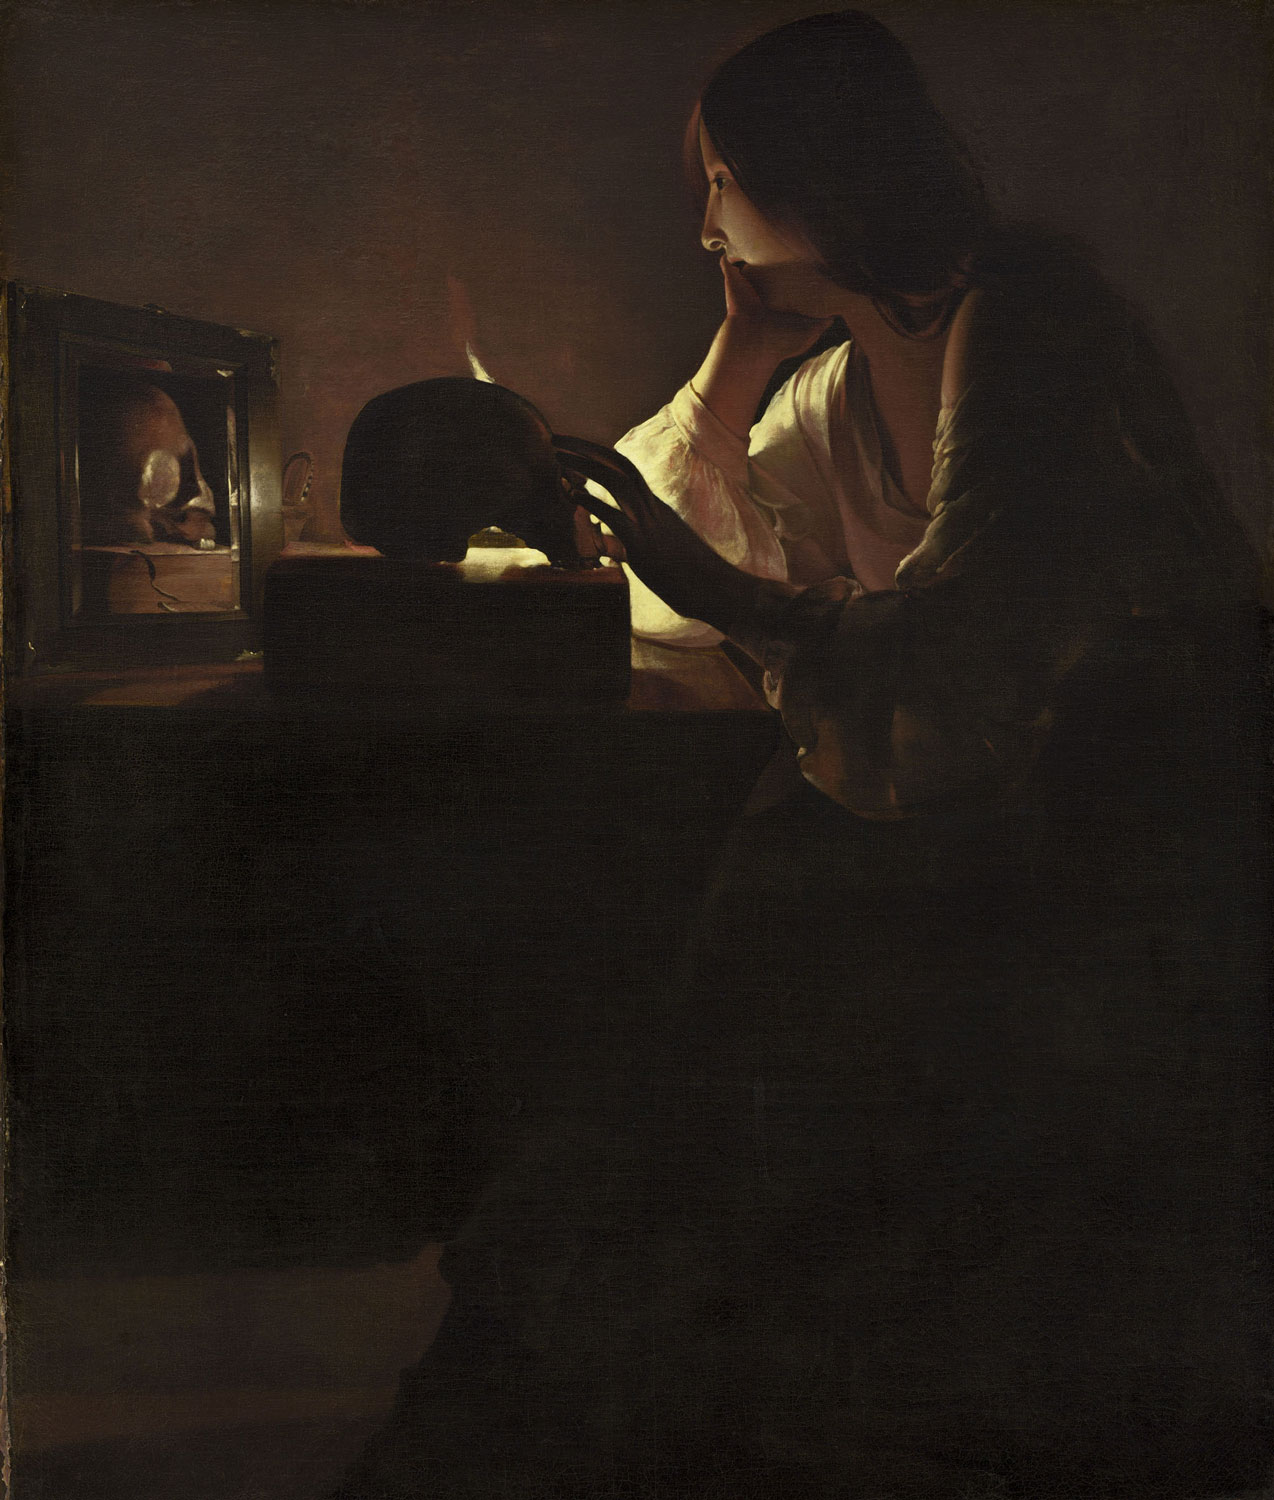 Georges de La Tour: the contrast between day and night